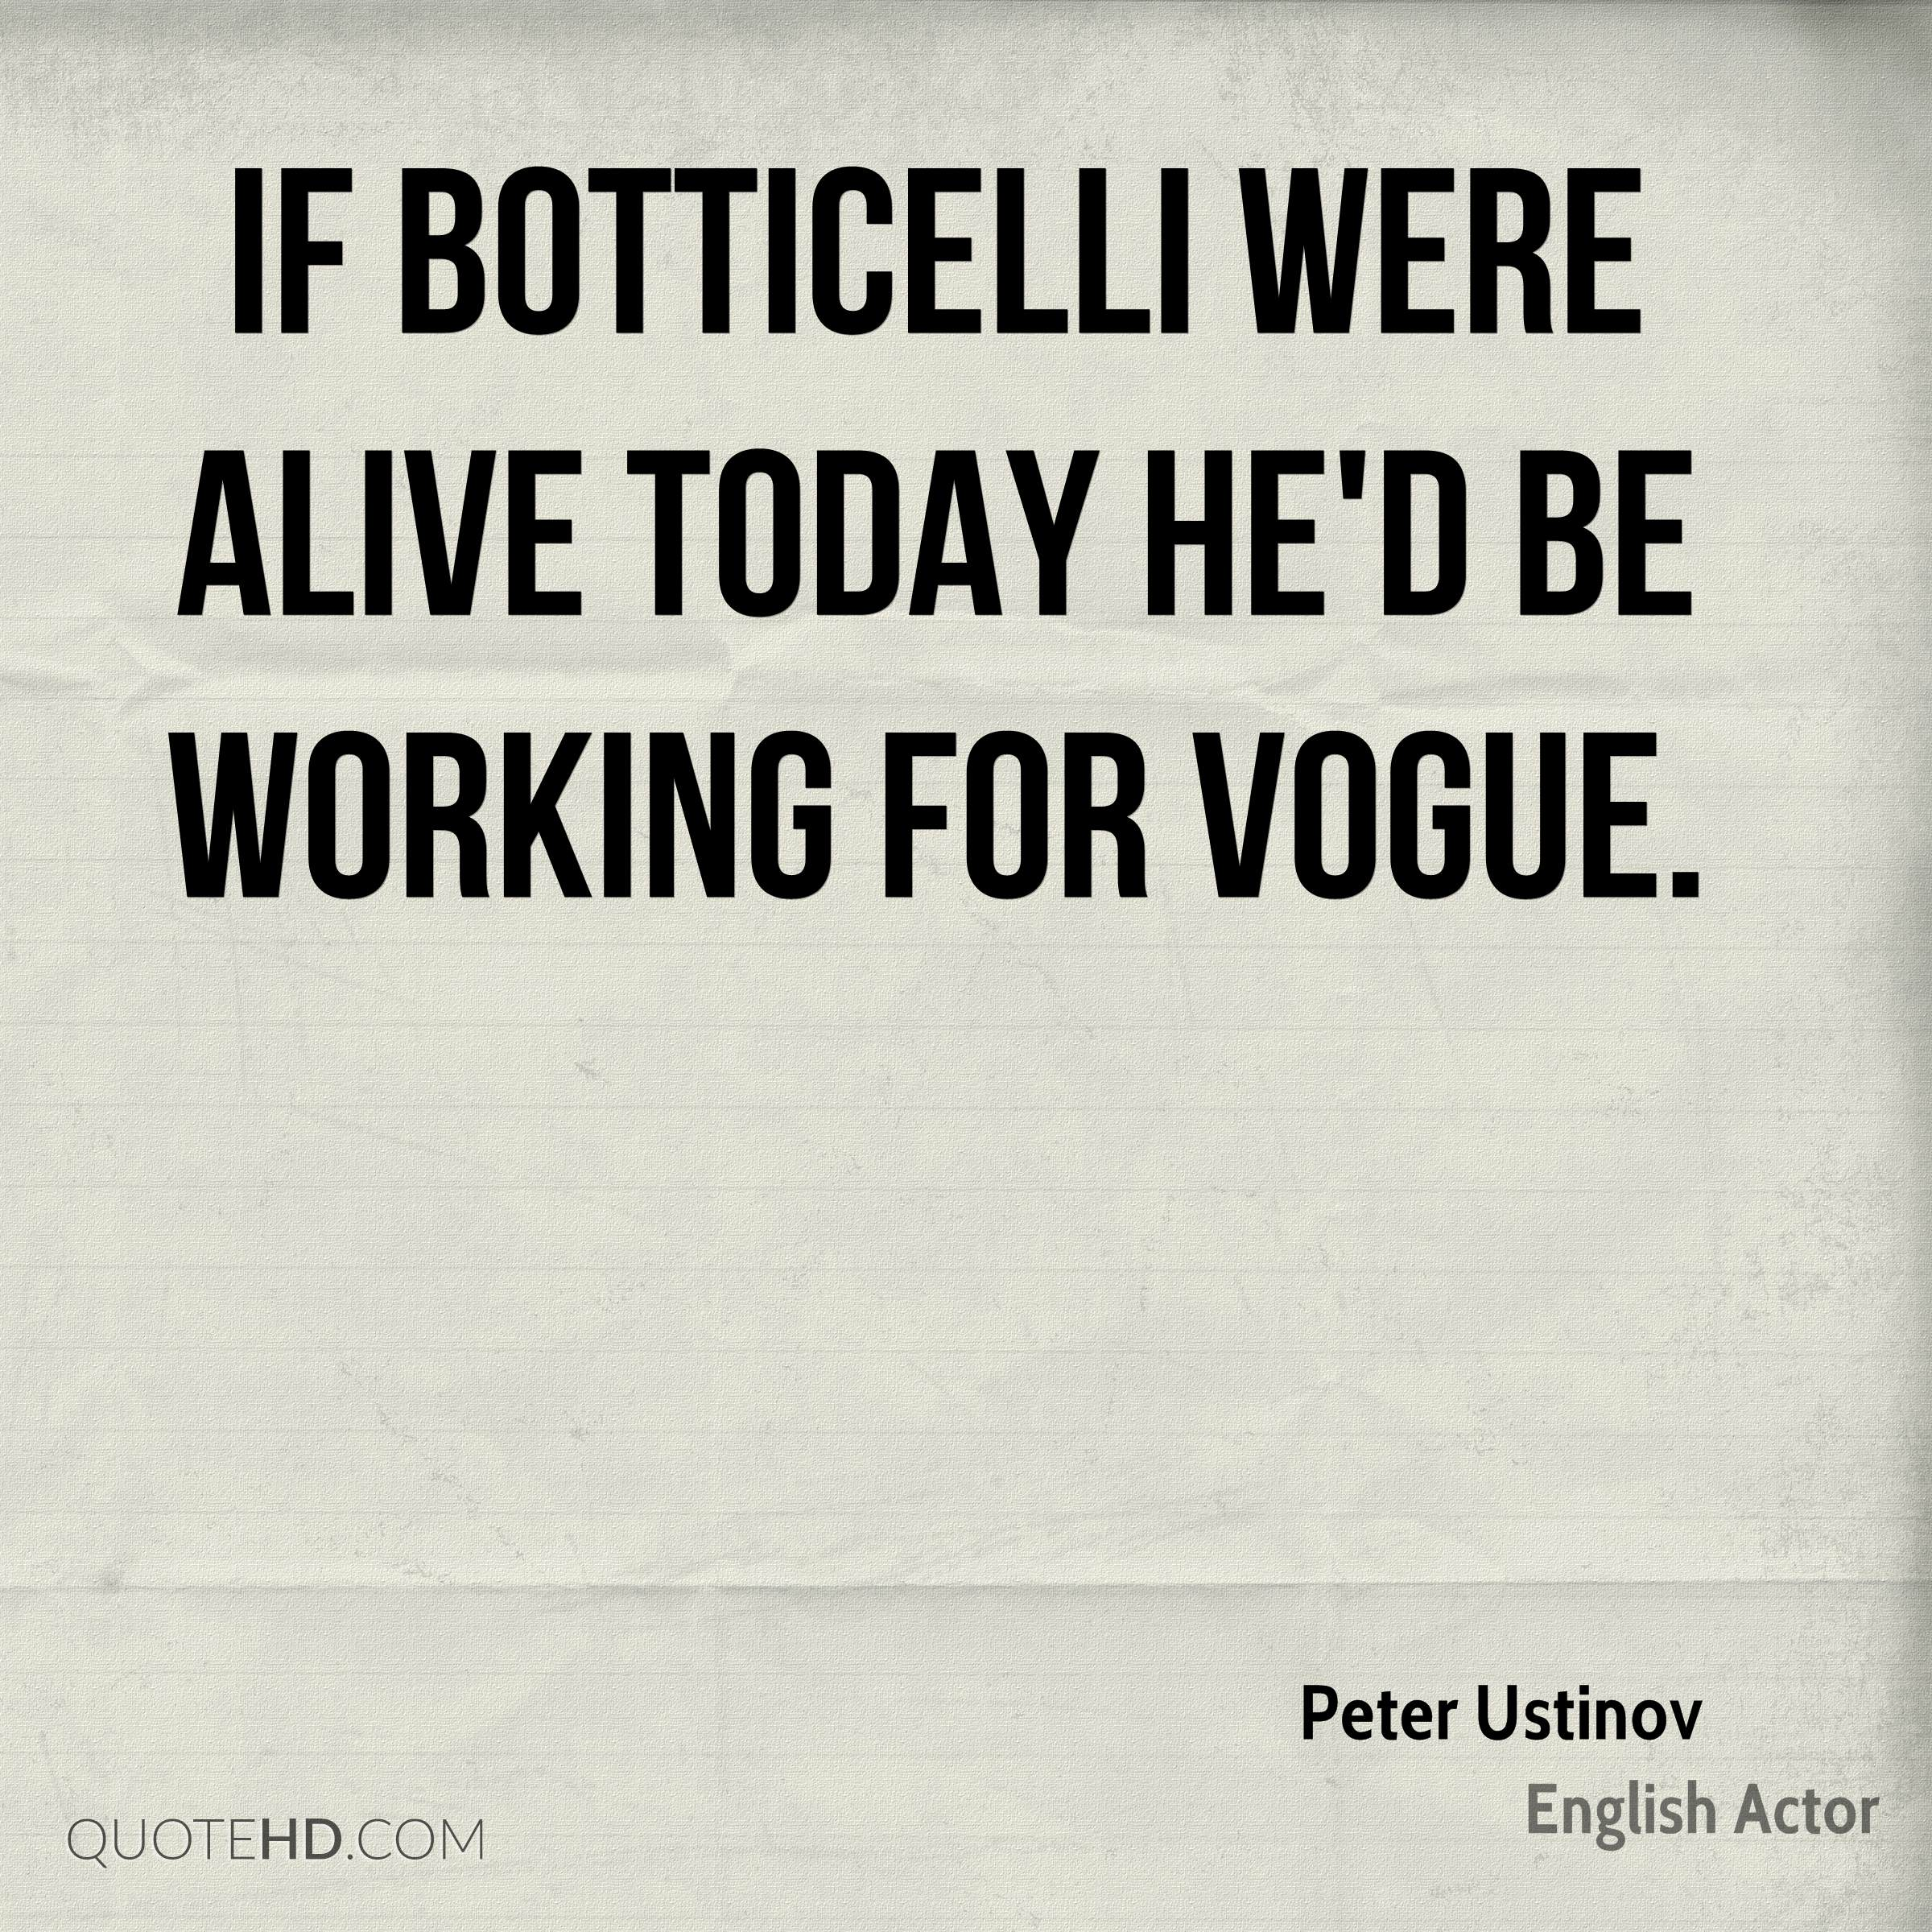 If Botticelli were alive today he'd be working for Vogue.